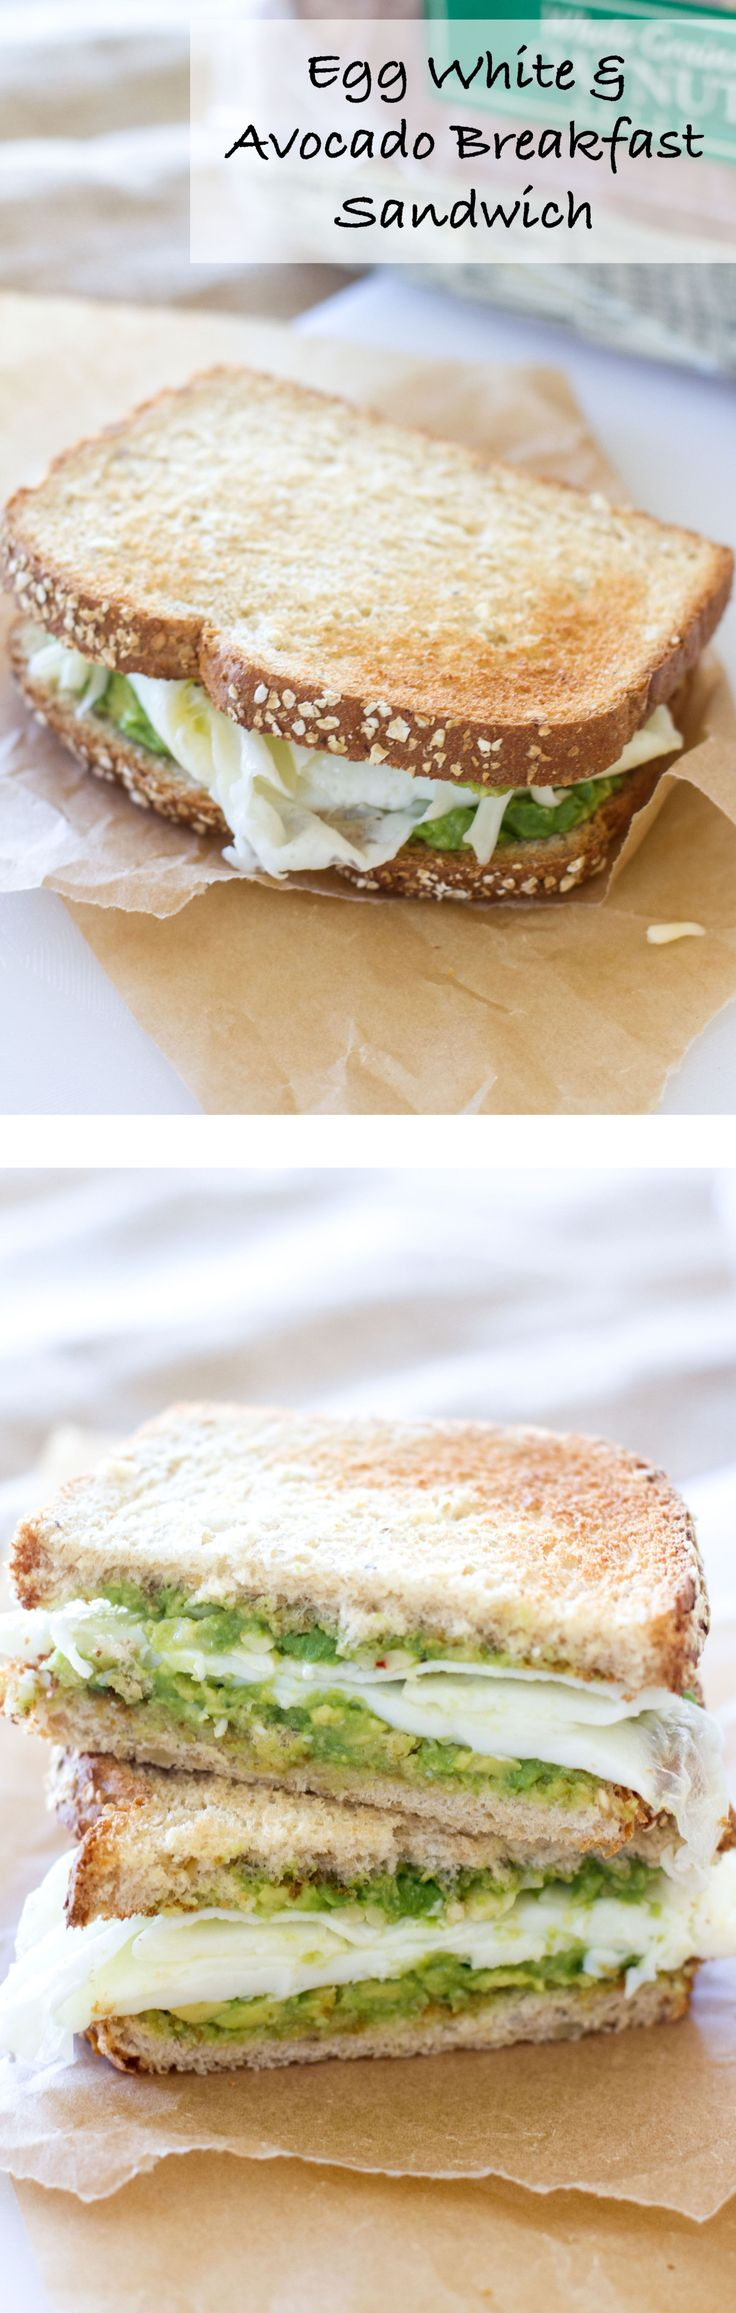 This protein packed breakfast sandwich is the perfect way to start the morning! | www.alattefood.com